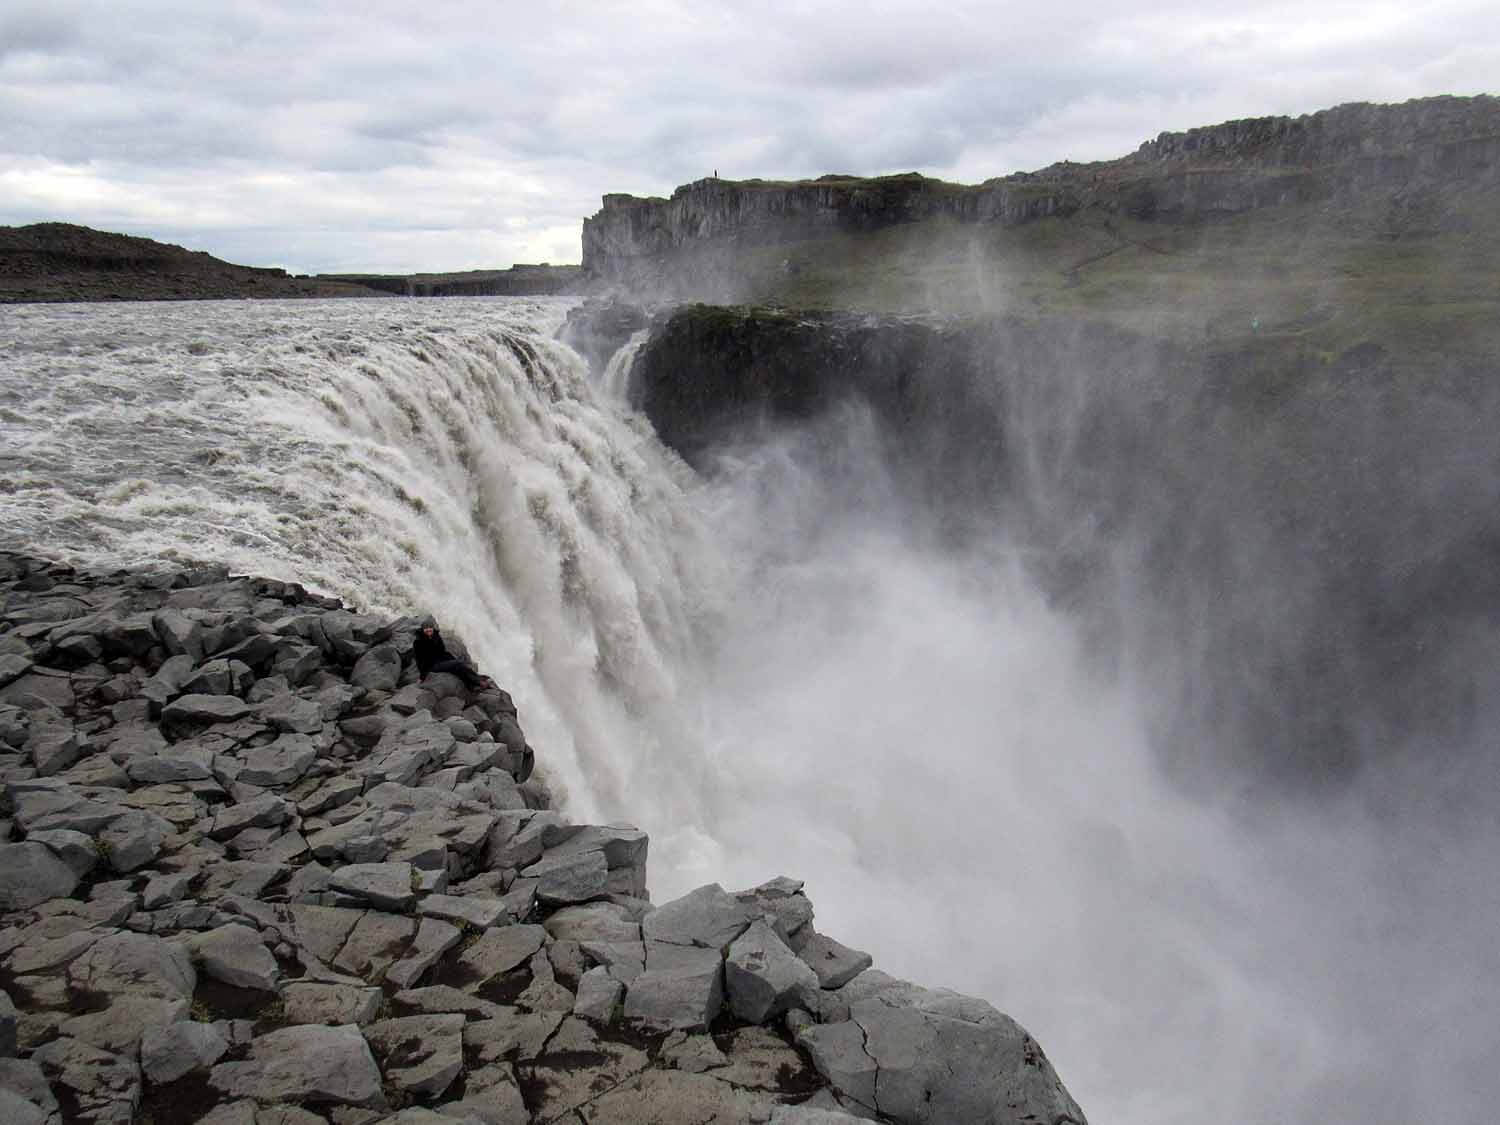 iceland-dettifoss-waterfall-largest-europe.JPG